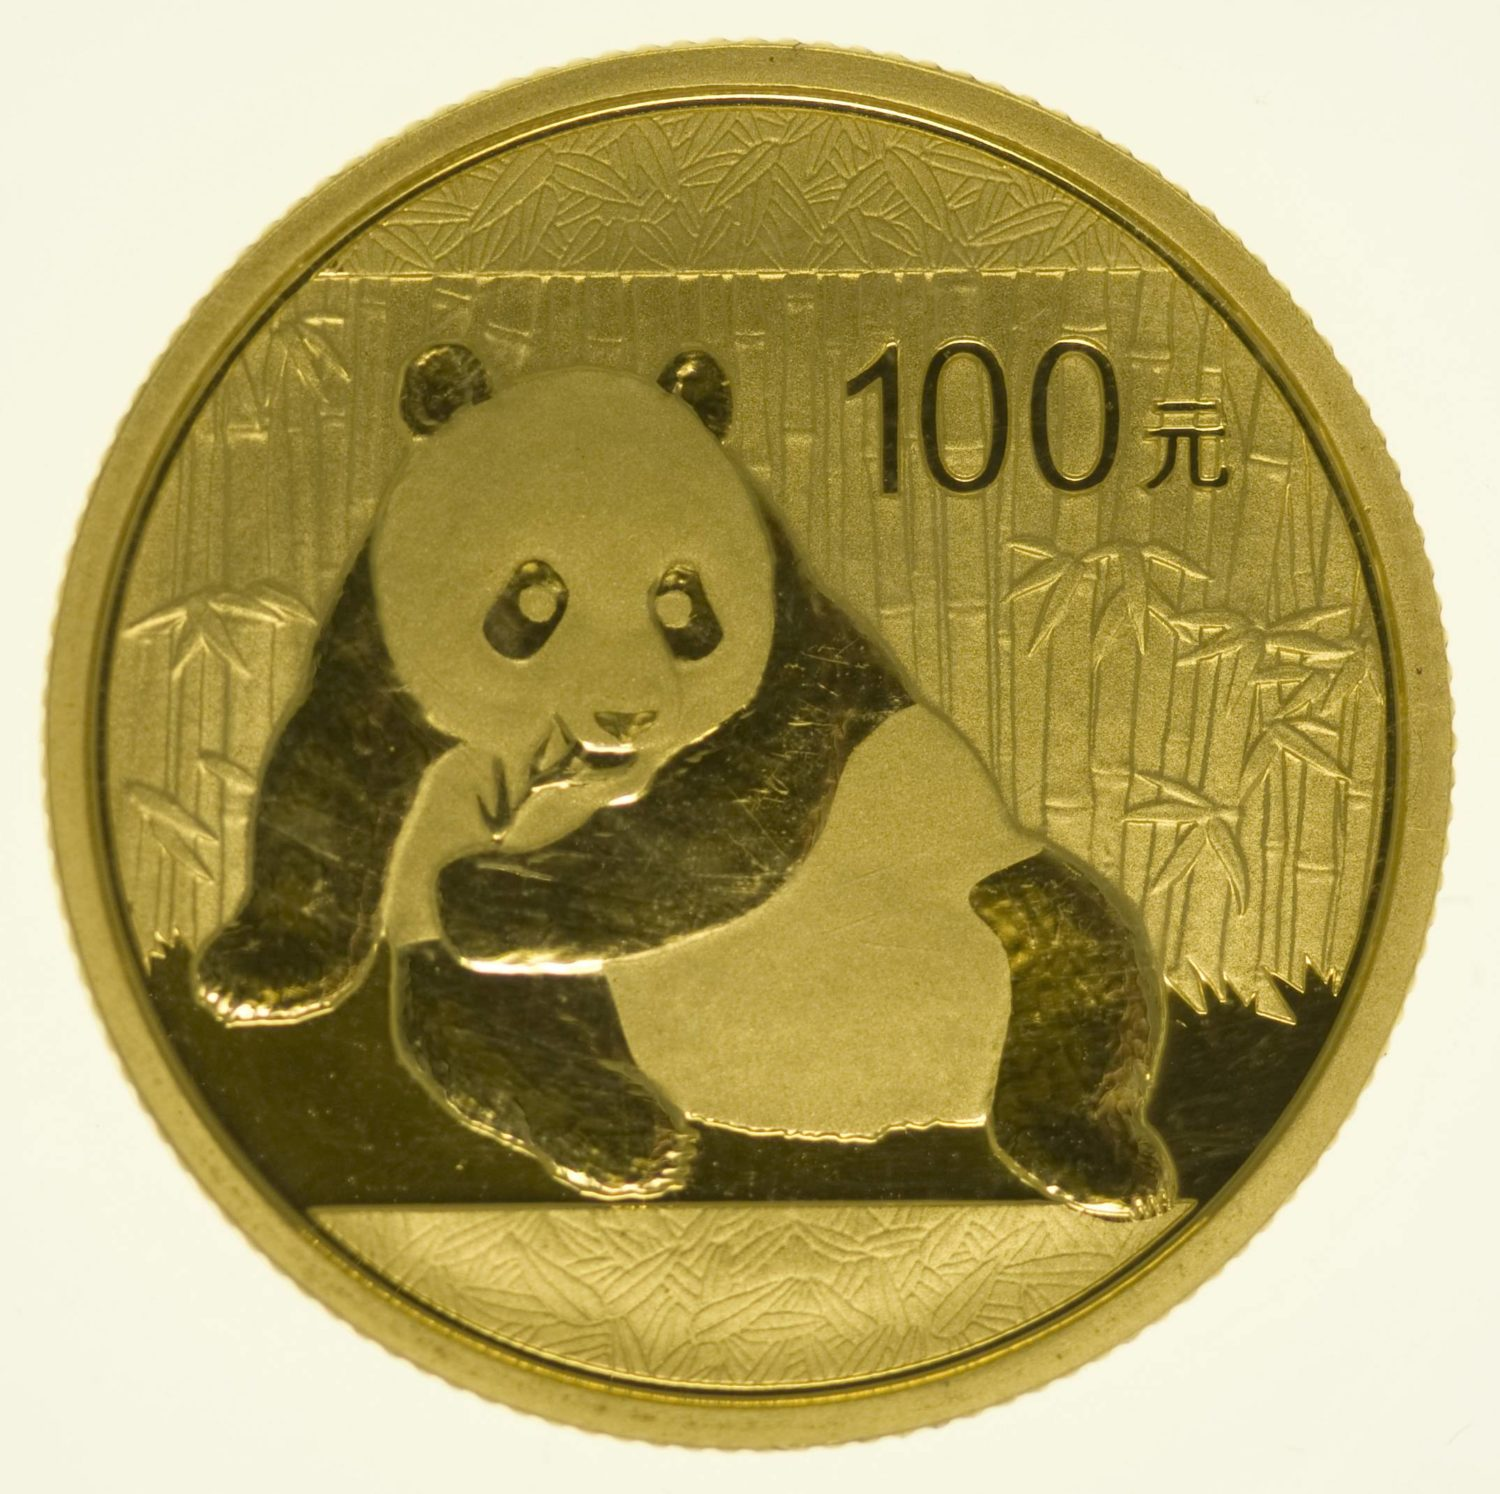 1/4 Unze Goldmünze China Panda 2015 100 Yuan 7,78 Gramm fein Gold RAR